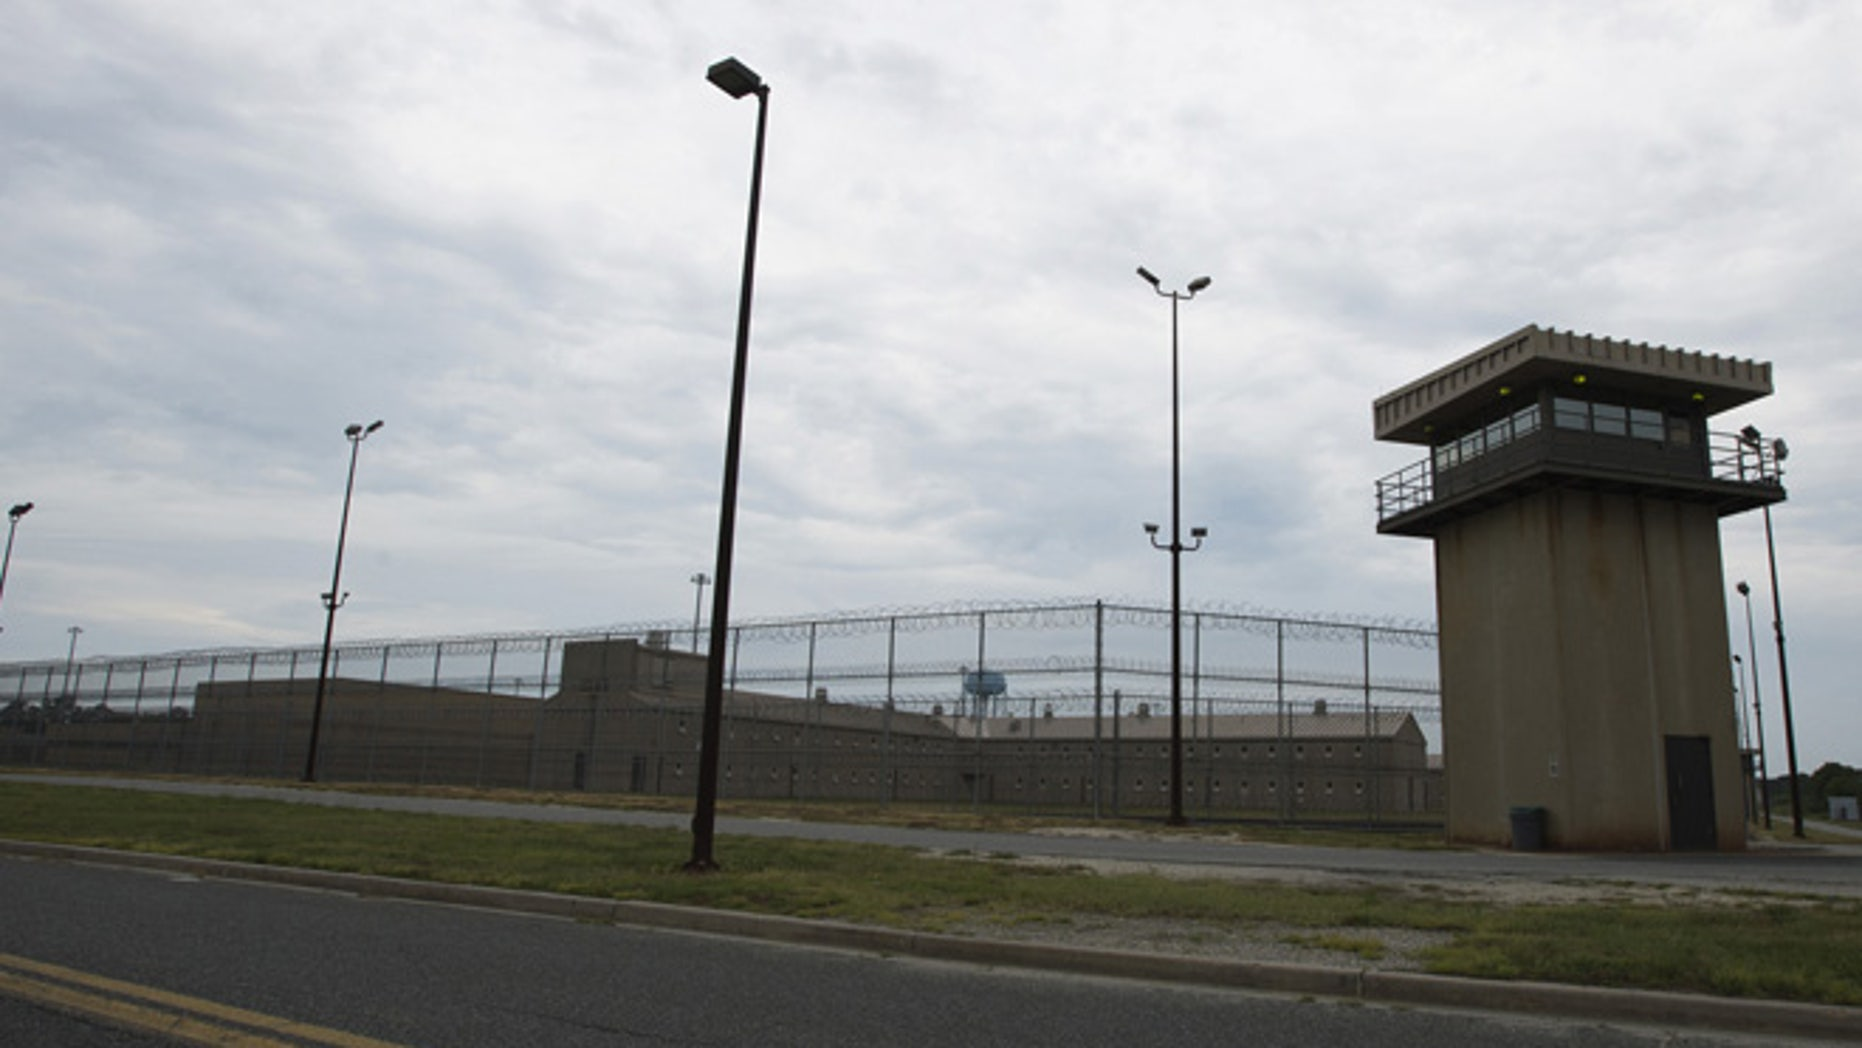 This 2014 photo shows the exterior of the Eastern Correctional Institution in Westover, M.D.